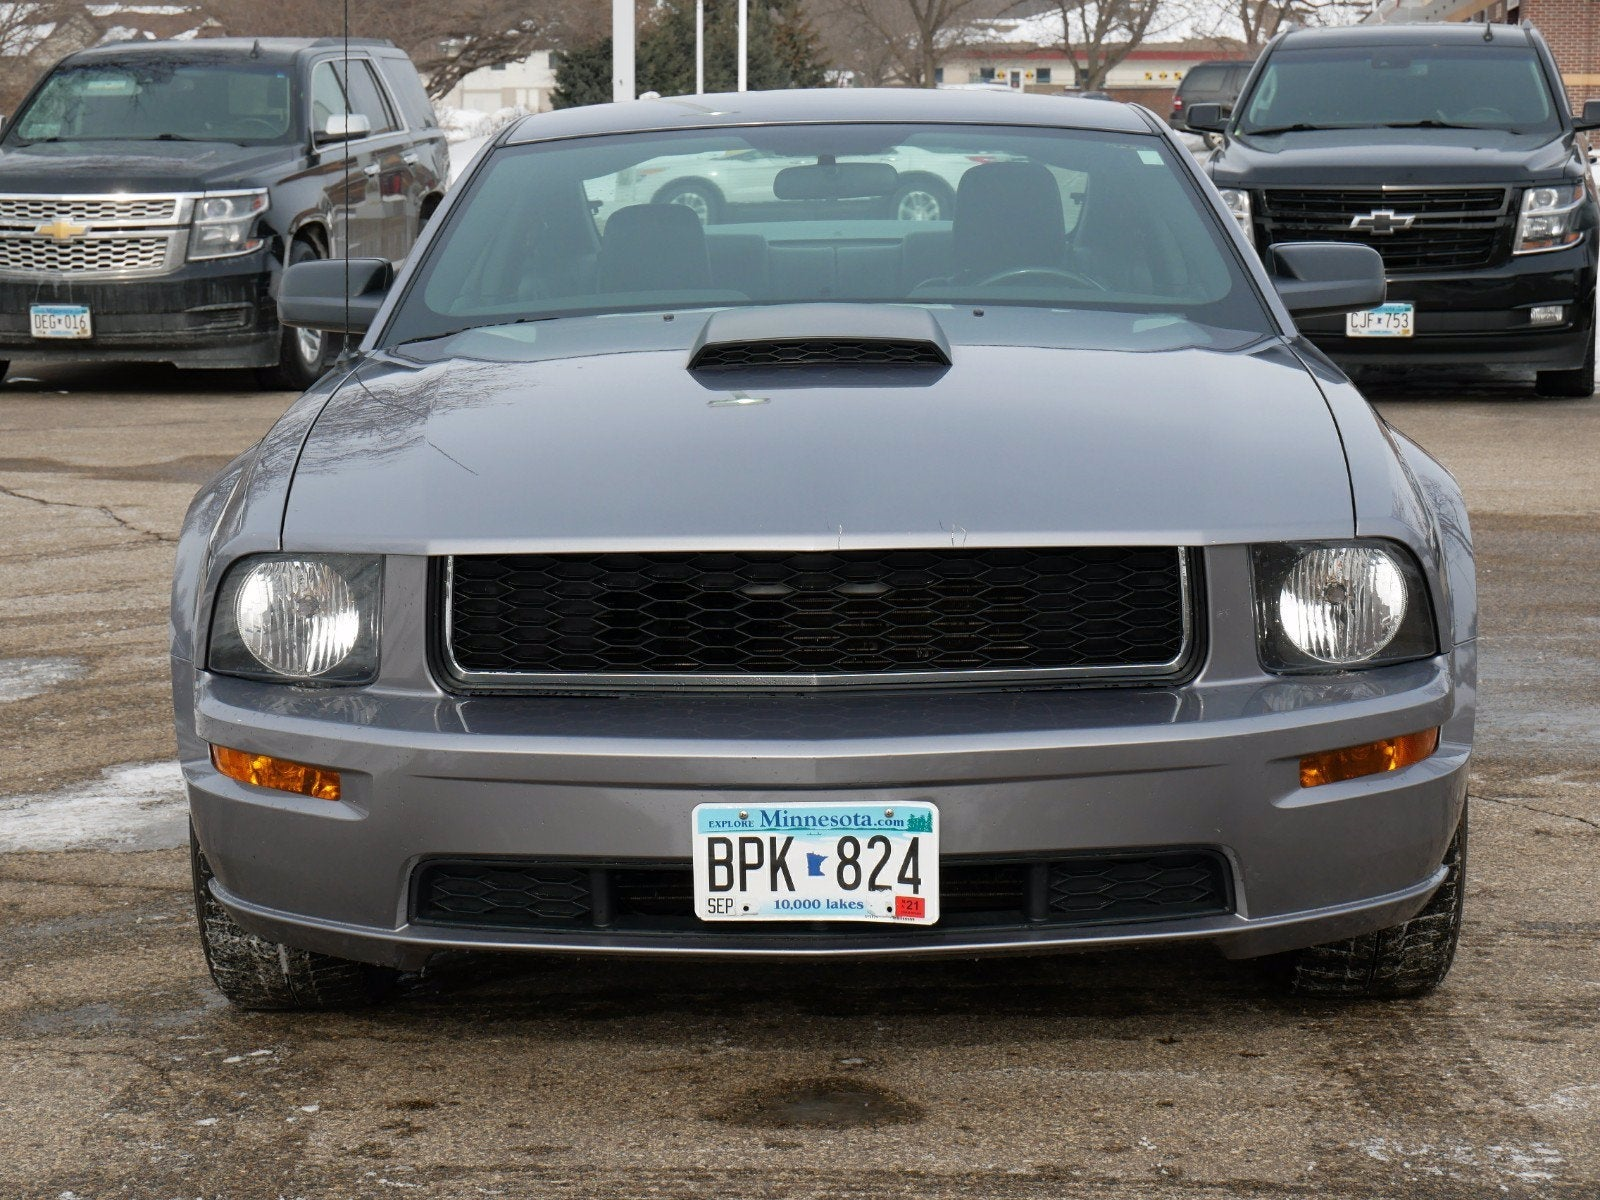 Used 2007 Ford Mustang GT Premium with VIN 1ZVFT82H975231427 for sale in Apple Valley, Minnesota